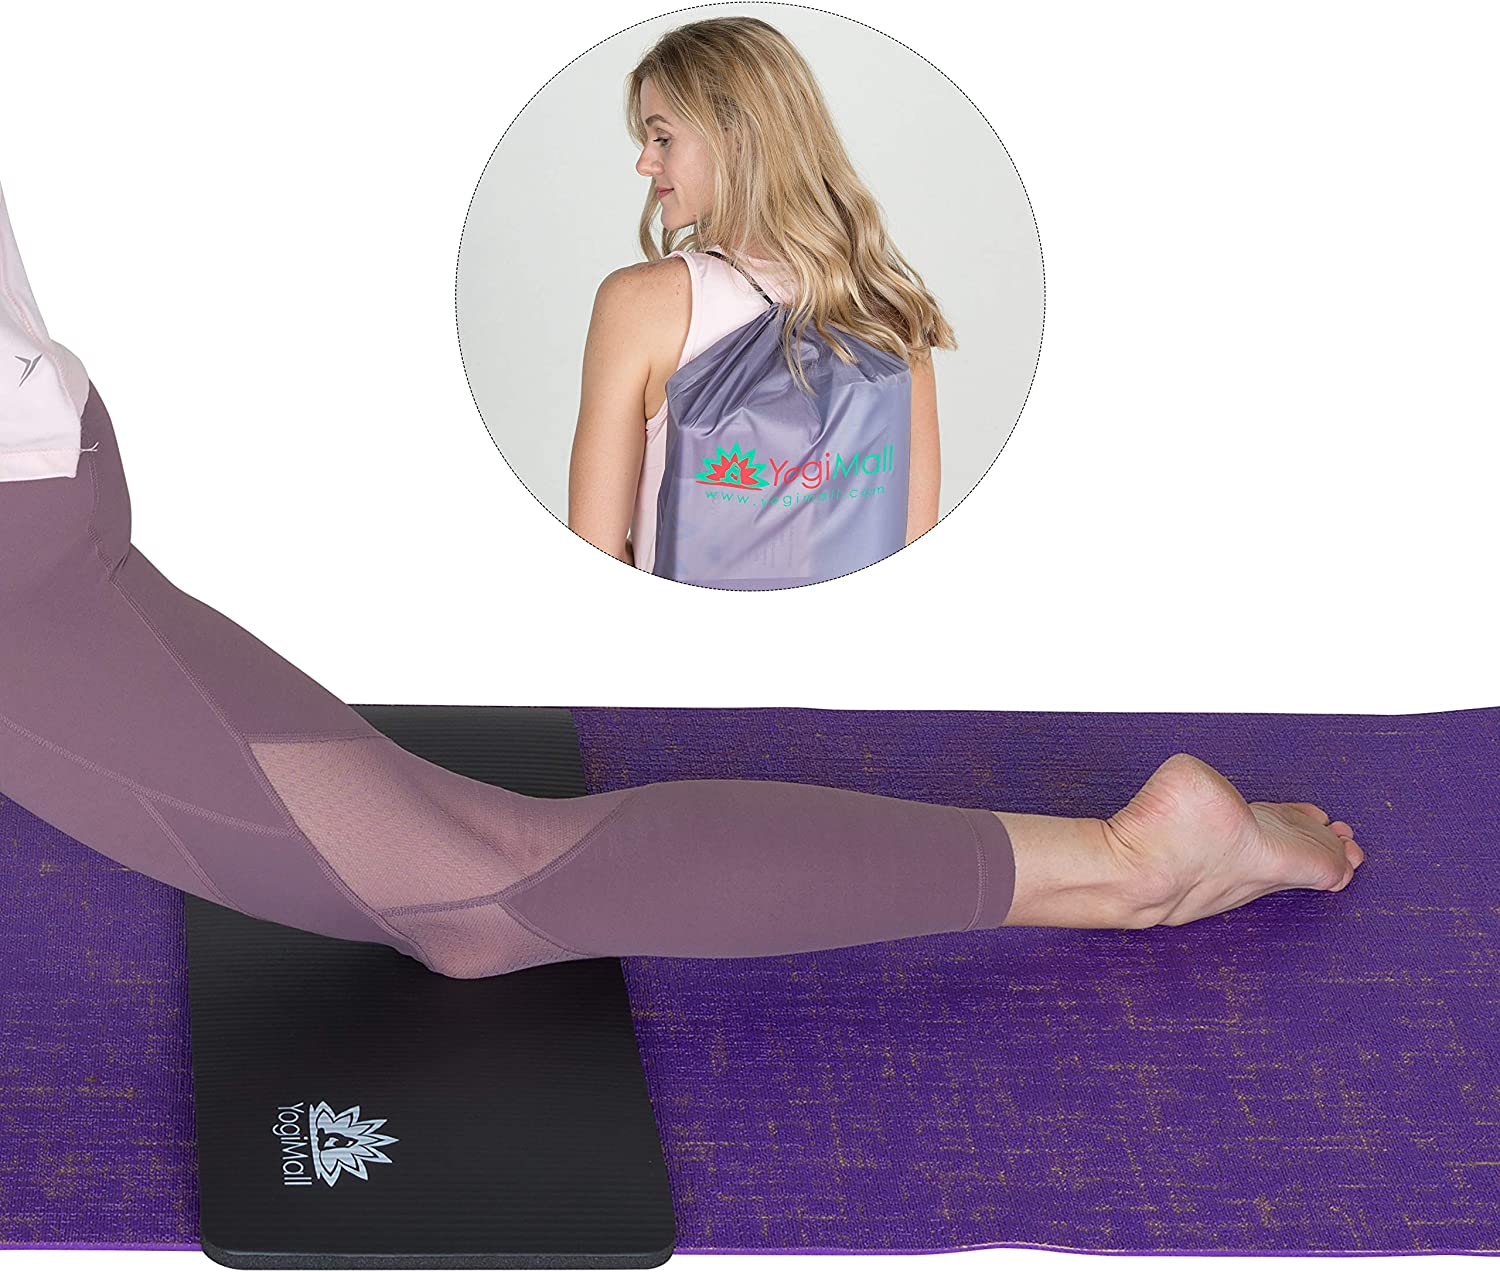 YogiMall Yoga Knee Pad Cushion, Yoga Block Carry Bag Sets for Pain Free Yoga Protect Knees, Deepen Your Poses Improve Balance – Great for Knees, Wrists, and Elbows – Choose from 3 Set Options